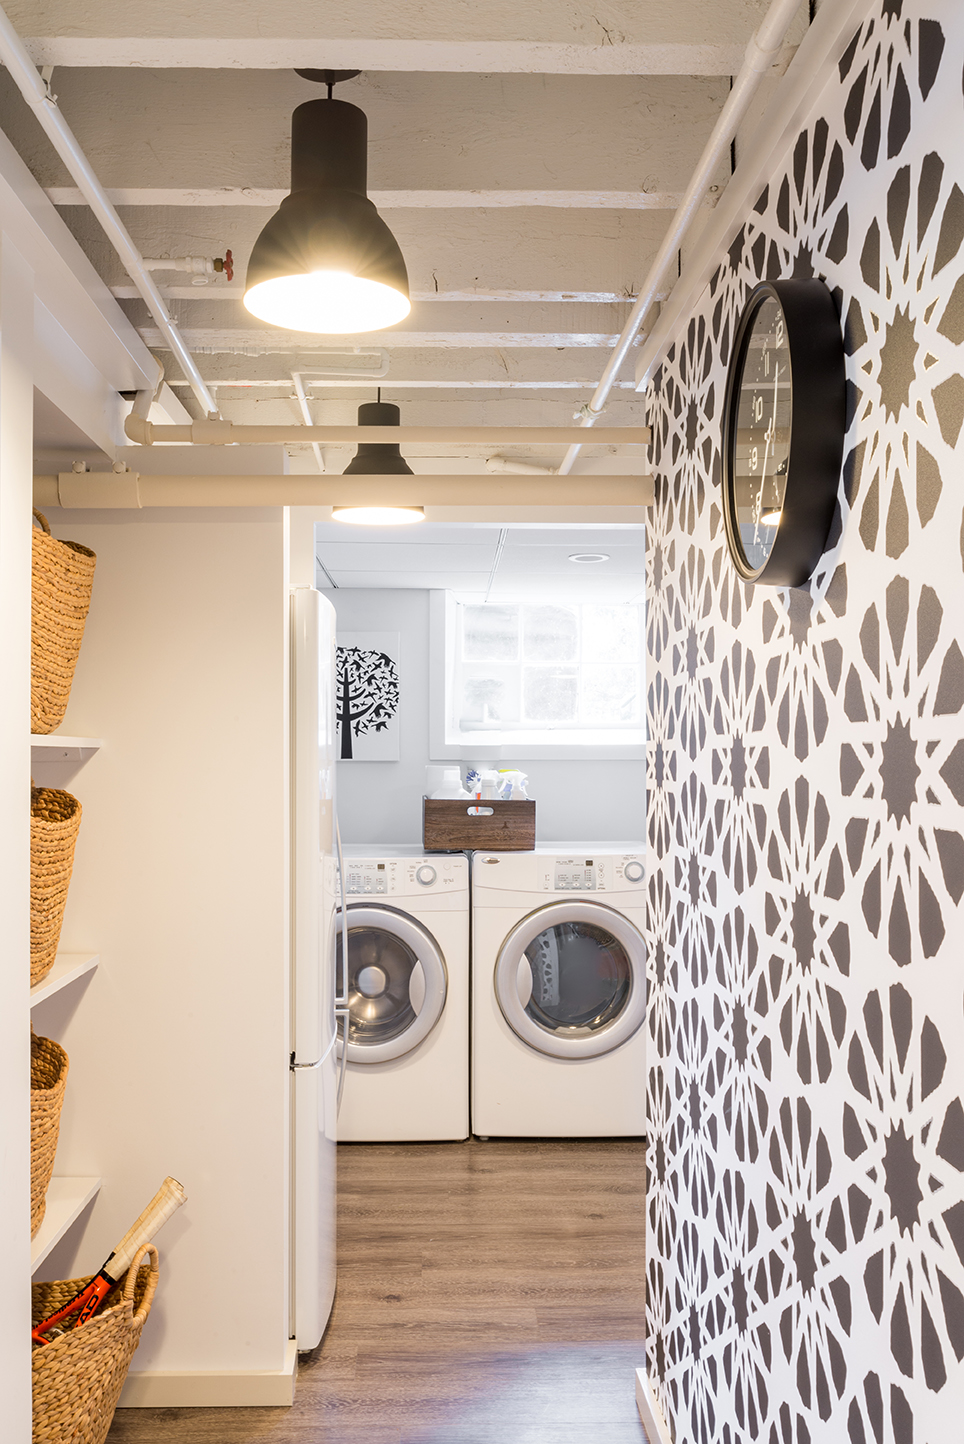 Kids art studio and mudroom laundry area by Justine Sterling Design